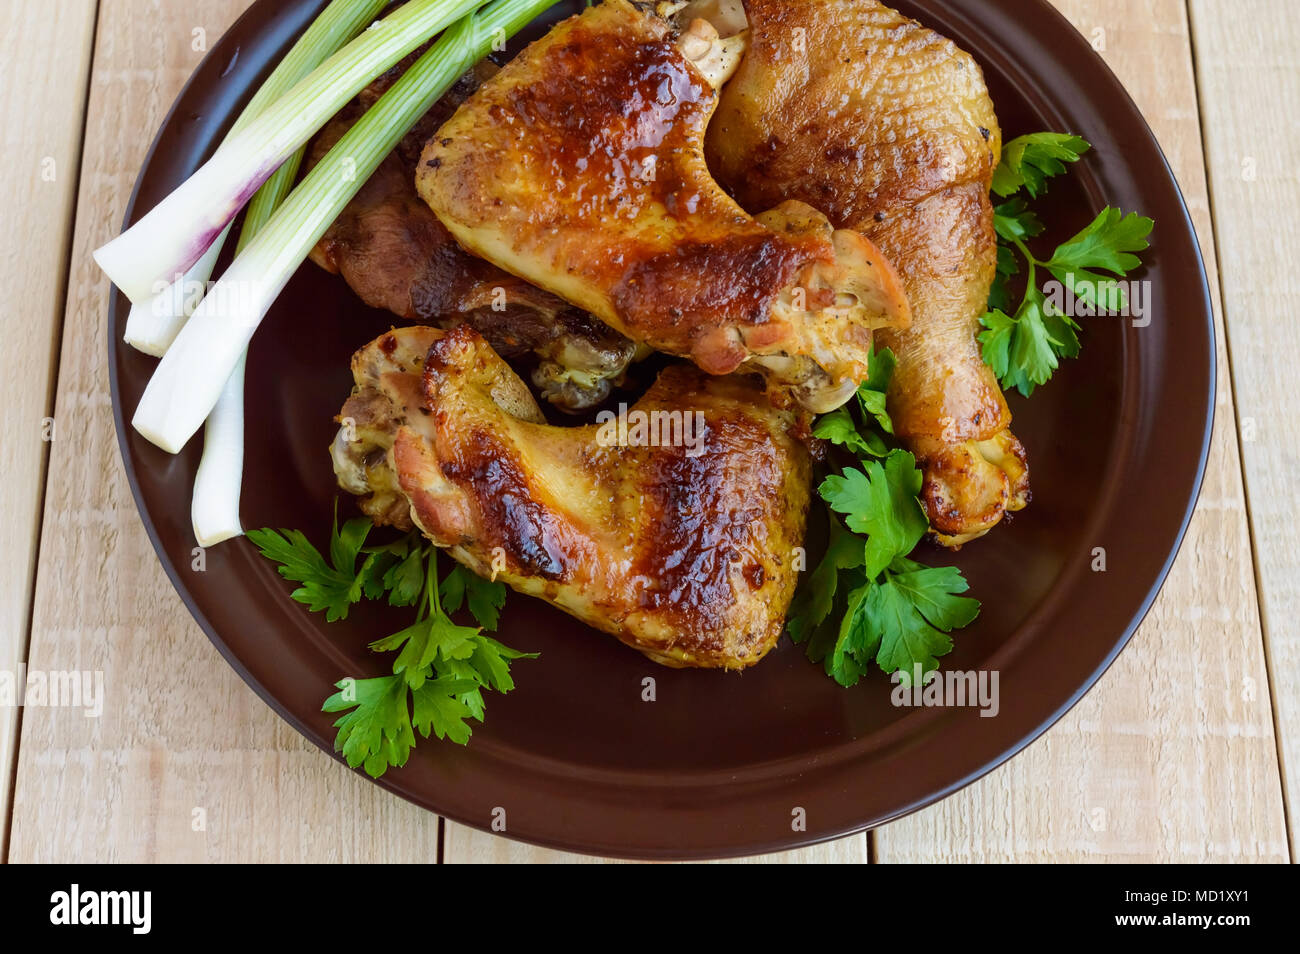 Roasted juicy chicken (legs, winglets) on a clay plate on a light wooden background. The top view - Stock Image